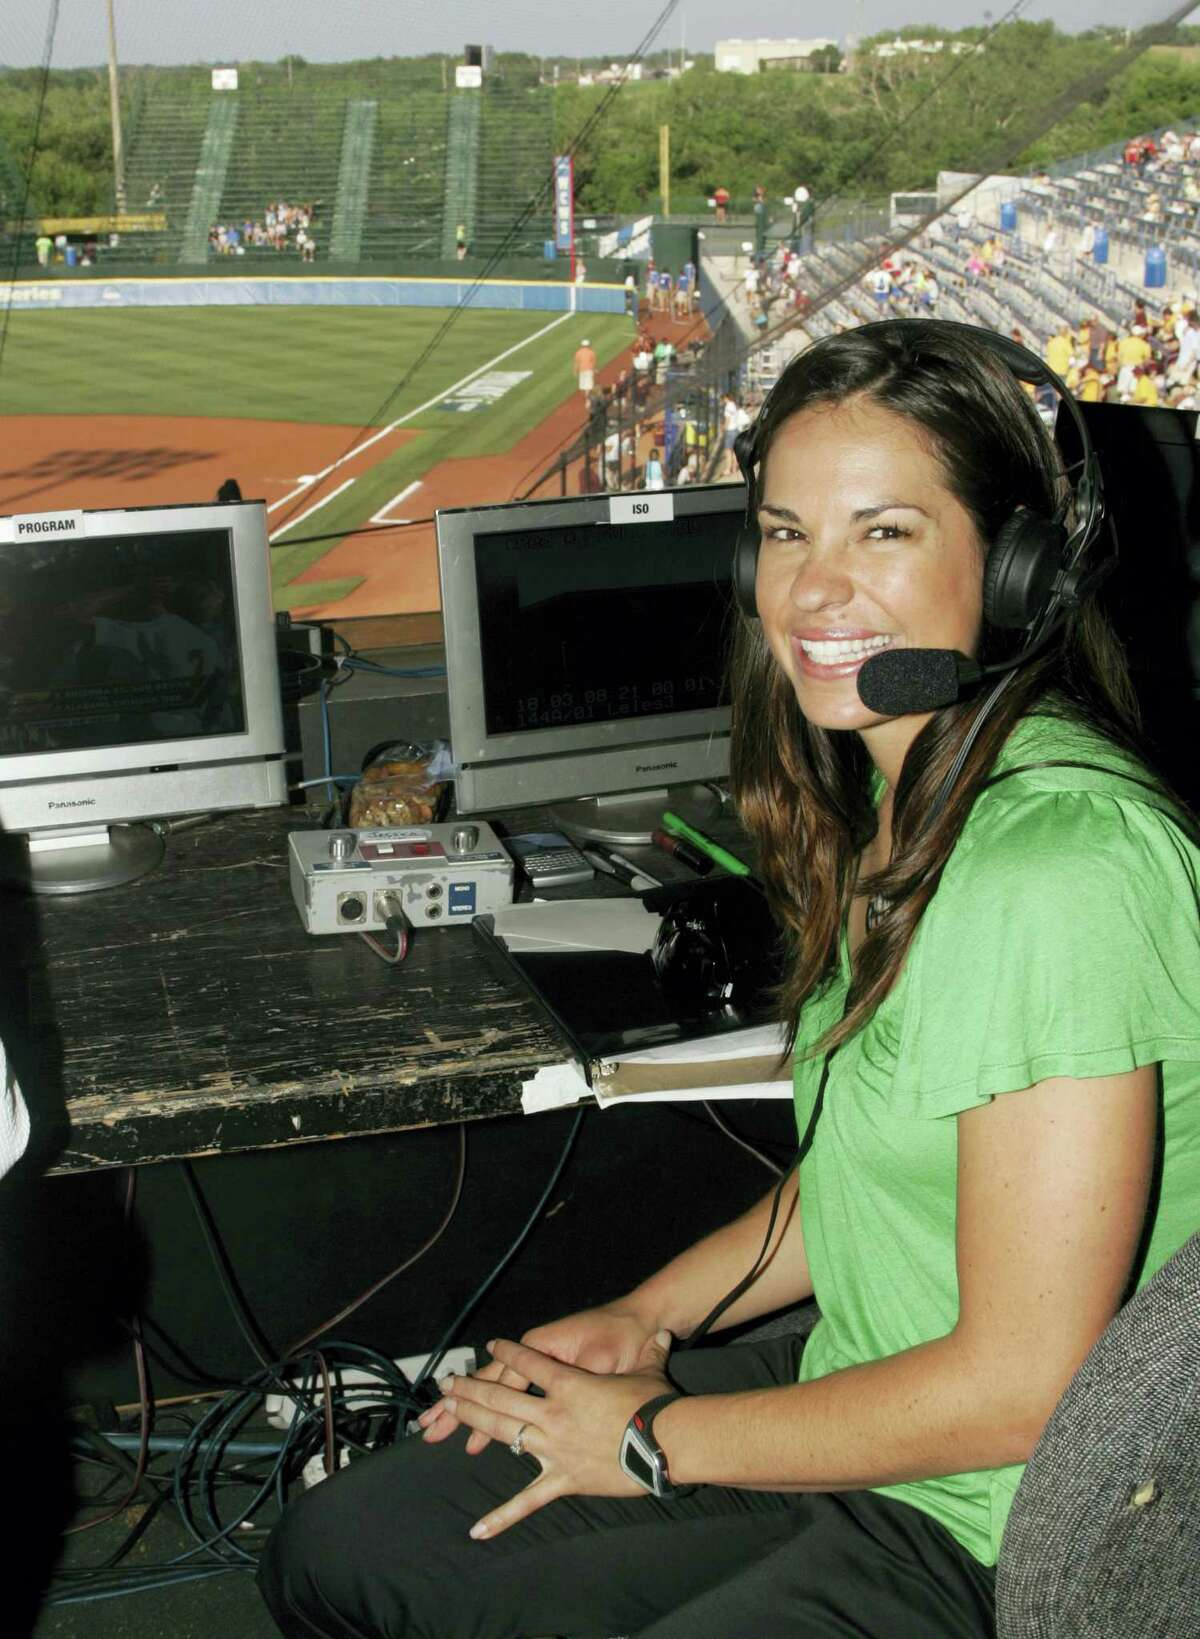 Jessica Mendoza poses for a photo in the ESPN broadcast booth at the Women's College World Series.